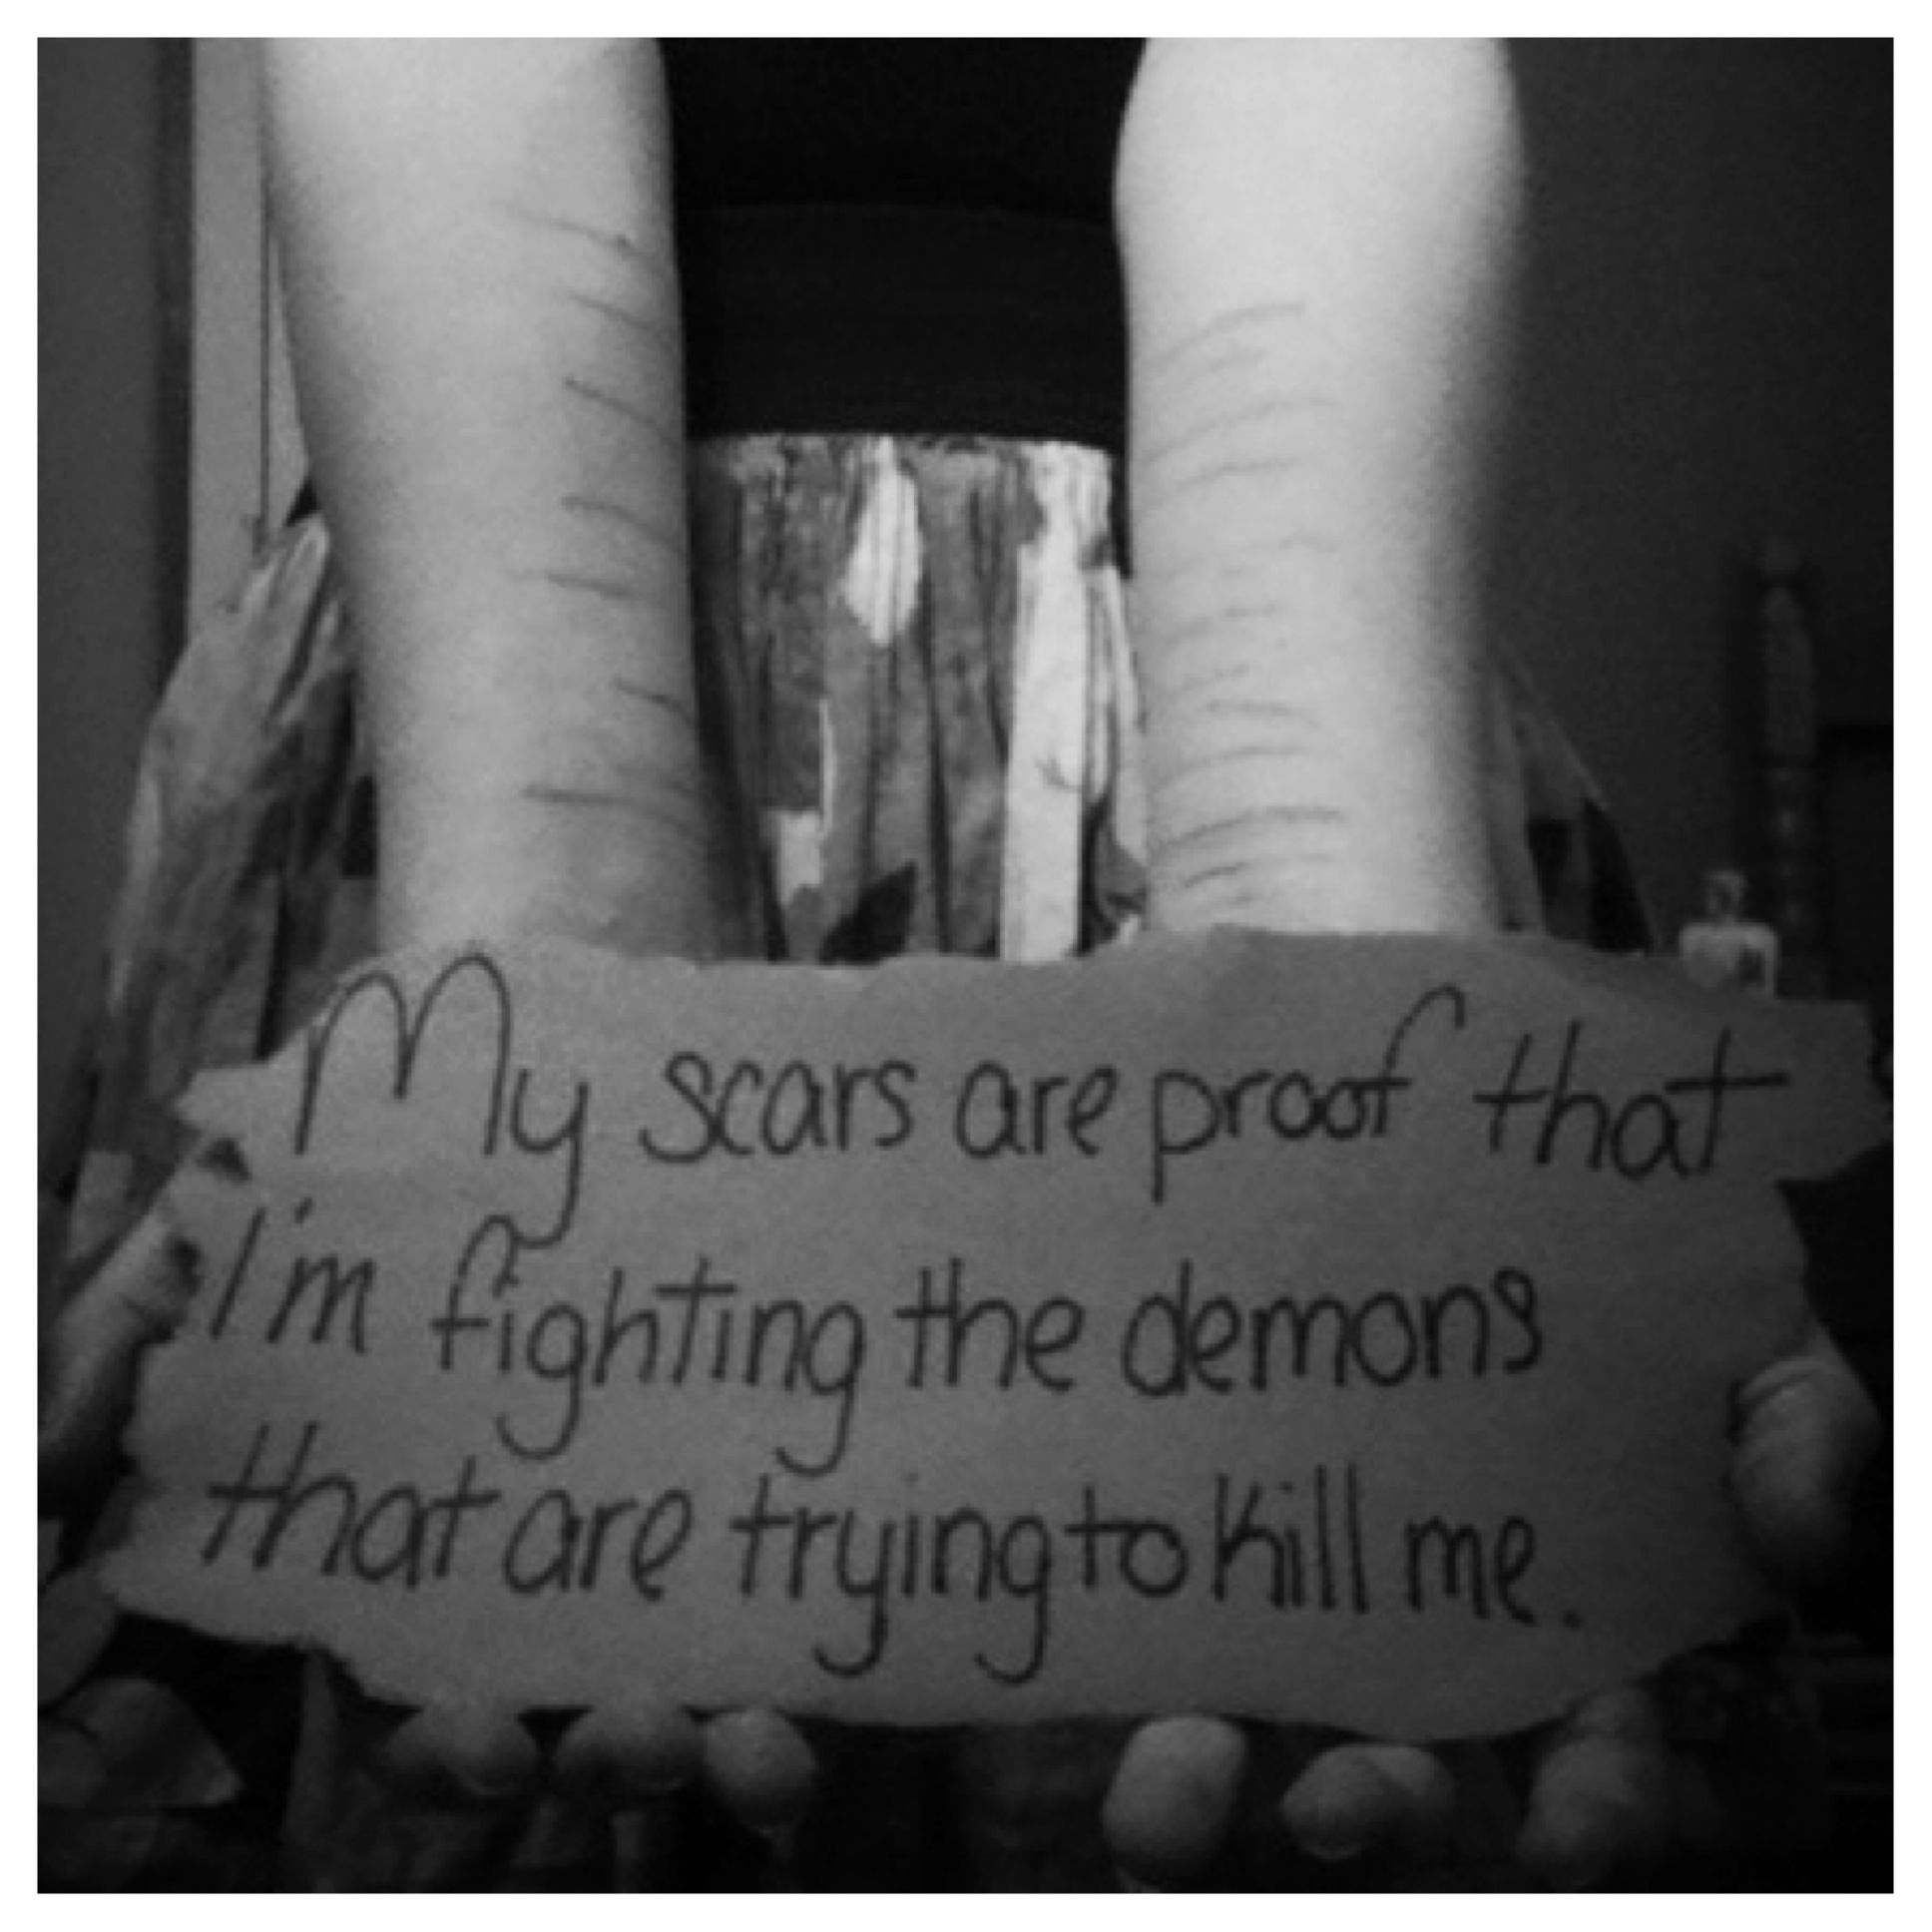 Self Harm Quotes: Self Harm Prevention, With A Good Quote. To Write Love On